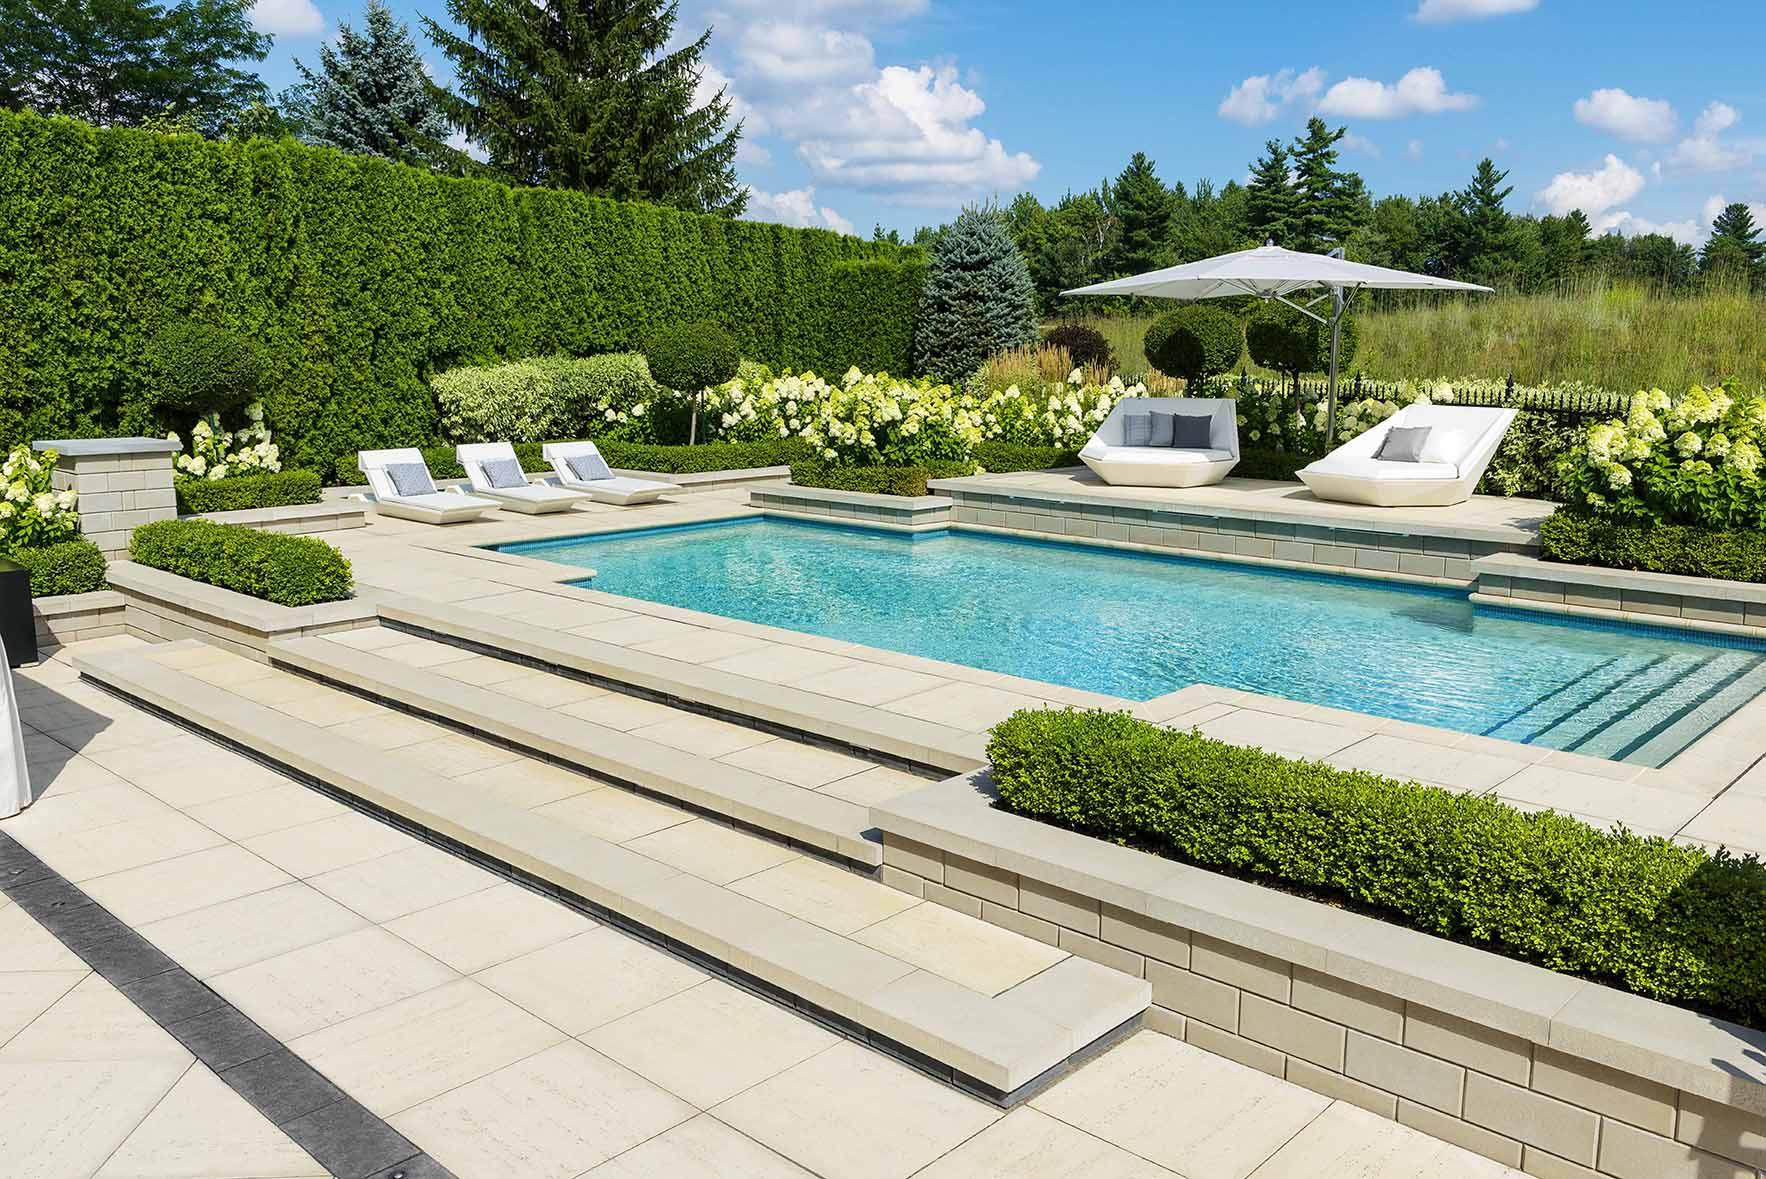 11 Inground Pool Landscaping Ideas